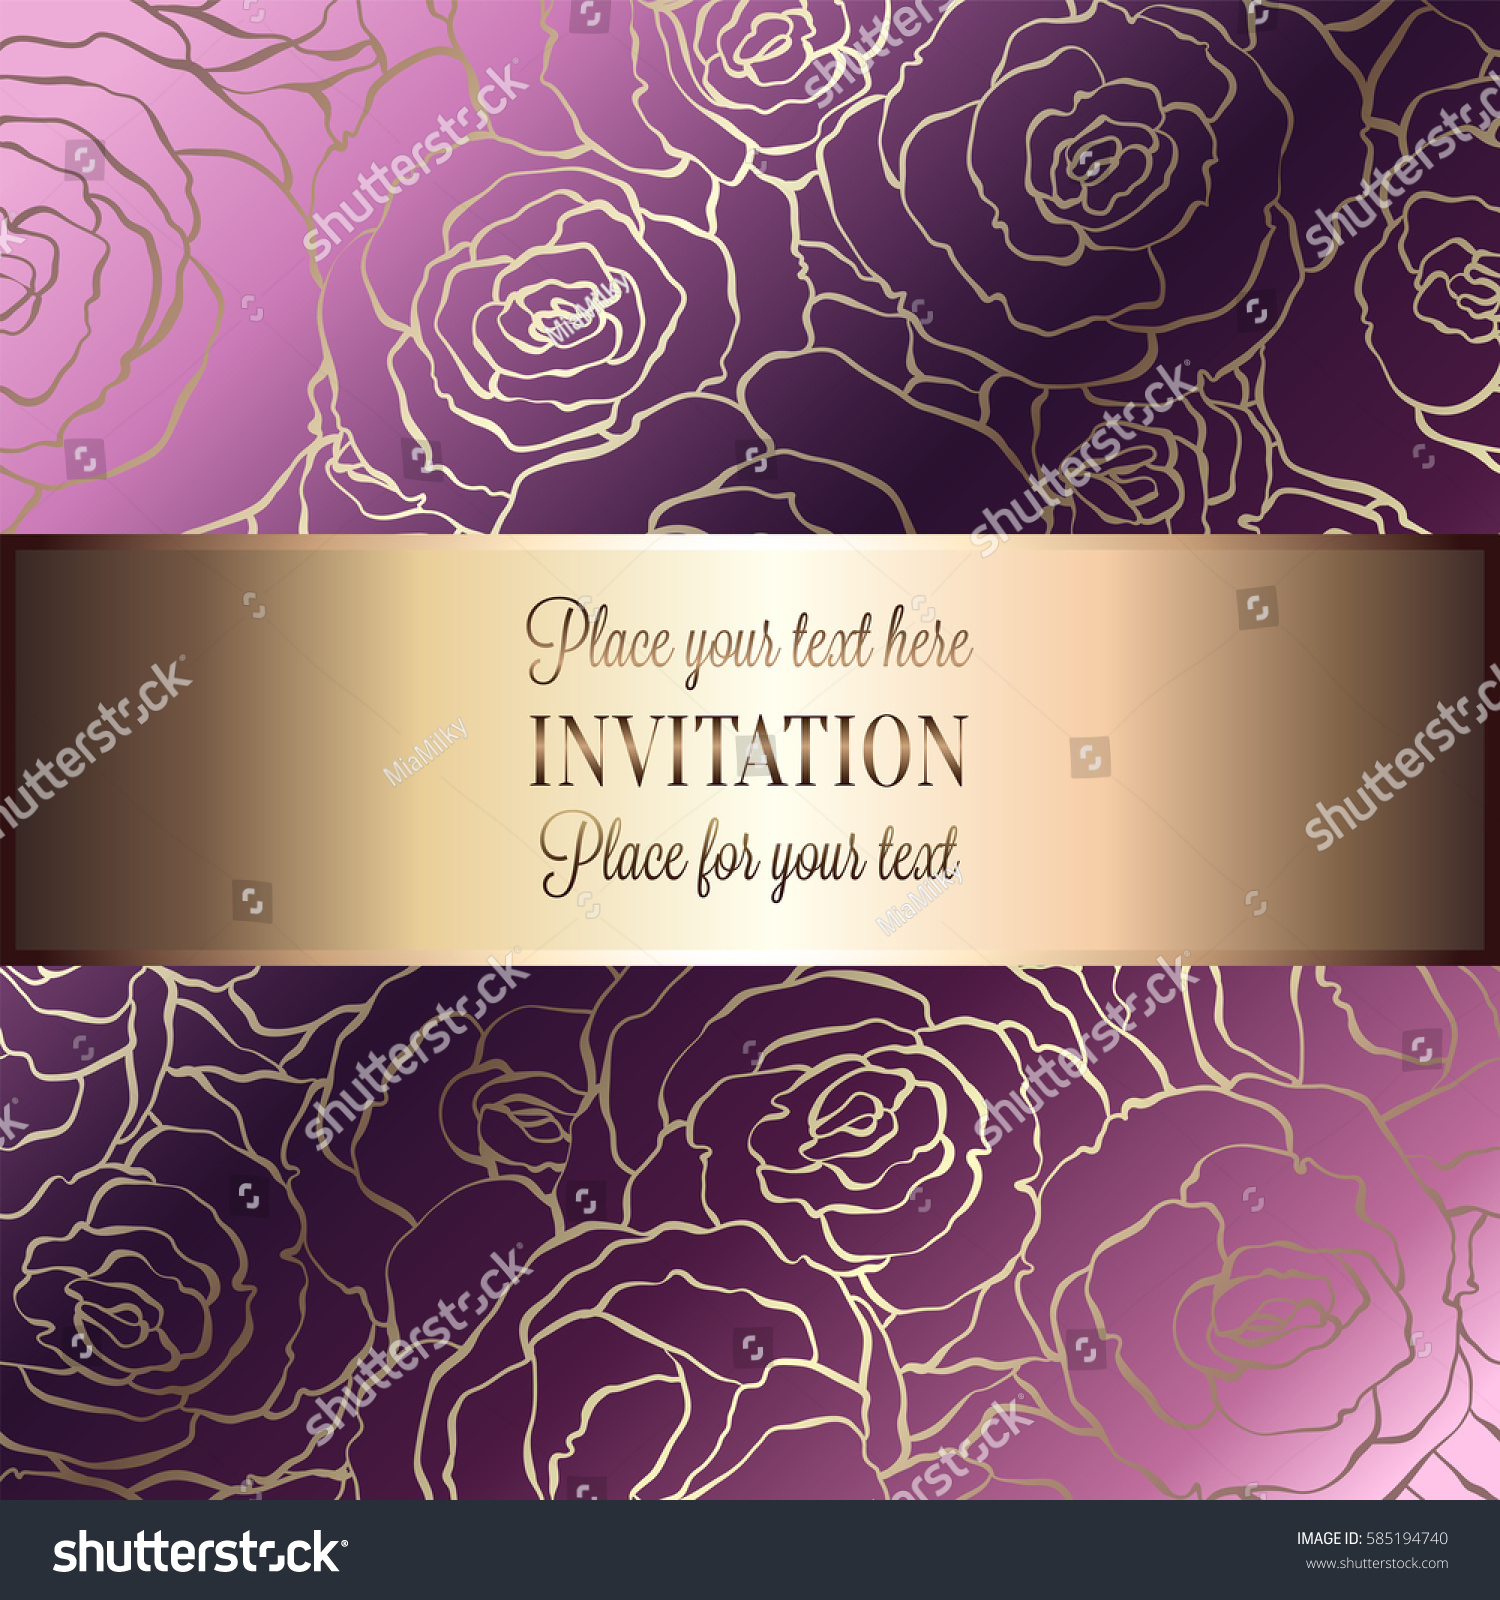 Abstract Background Roses Luxury Pink Gold Stock Vector Royalty